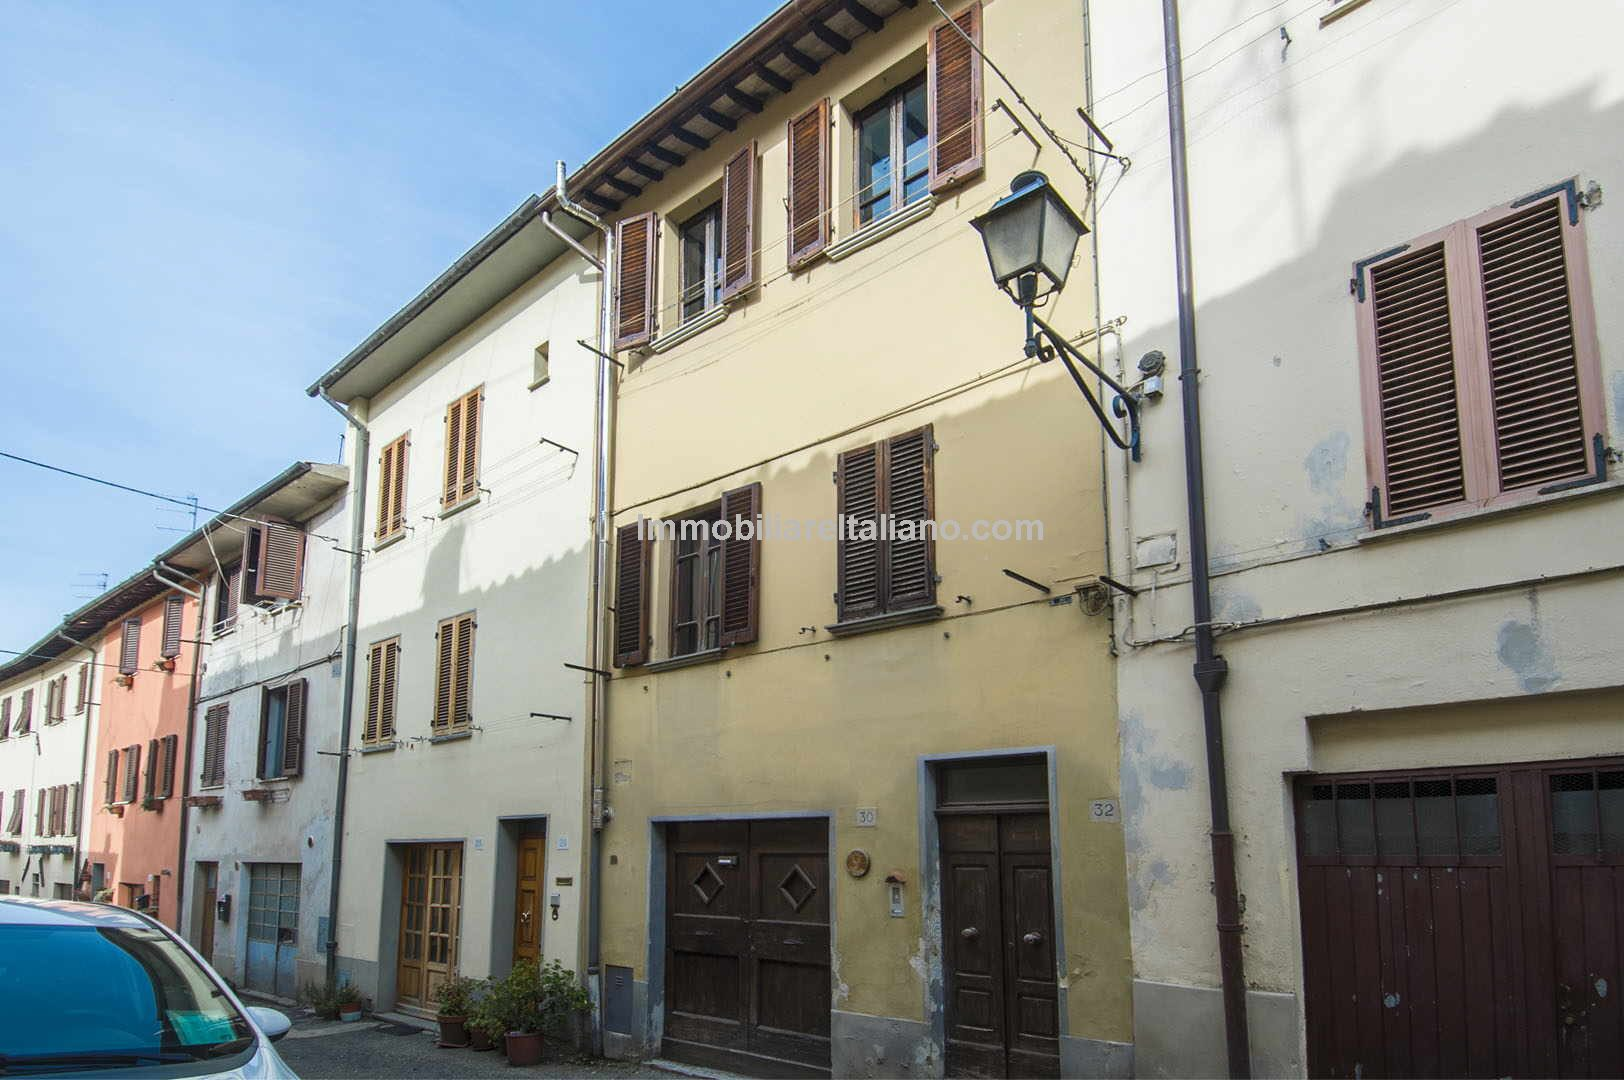 Typical Tuscan townhouse property located in the medieval town of Sansepolcro. A nice location which is easily reached and close to all amenities and facilities. This property has 2 bedrooms and unusually for a town centre property, a very useful garage.